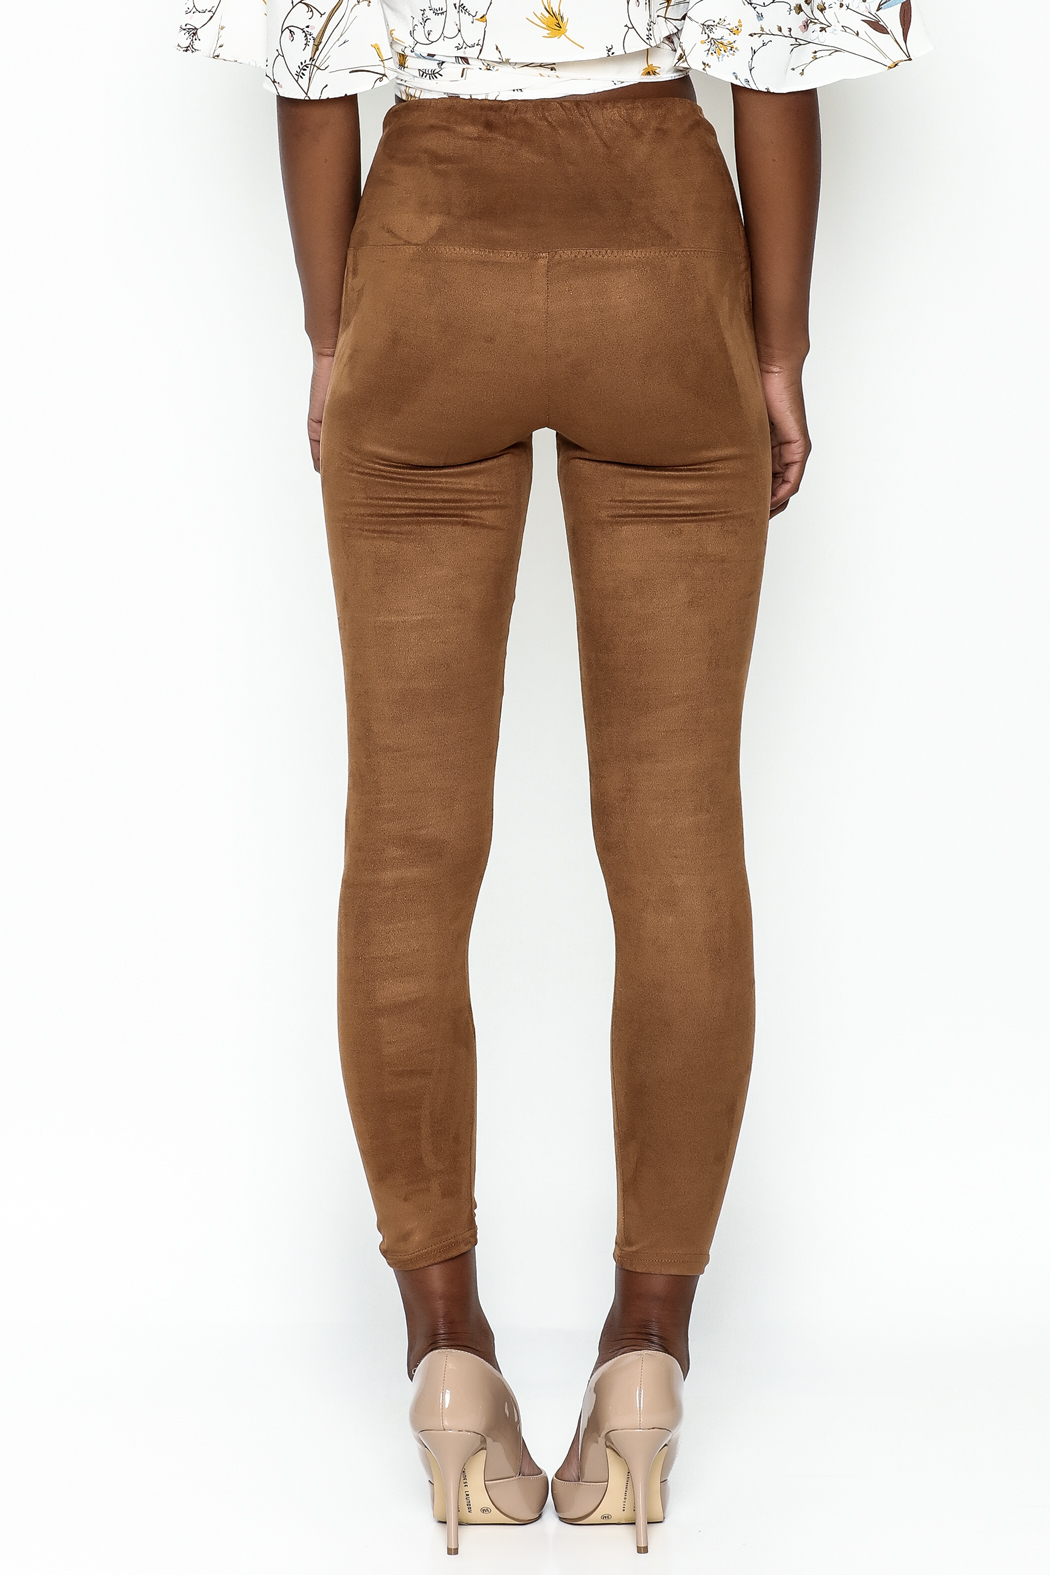 Honey Punch Suede Leggings - Back Cropped Image